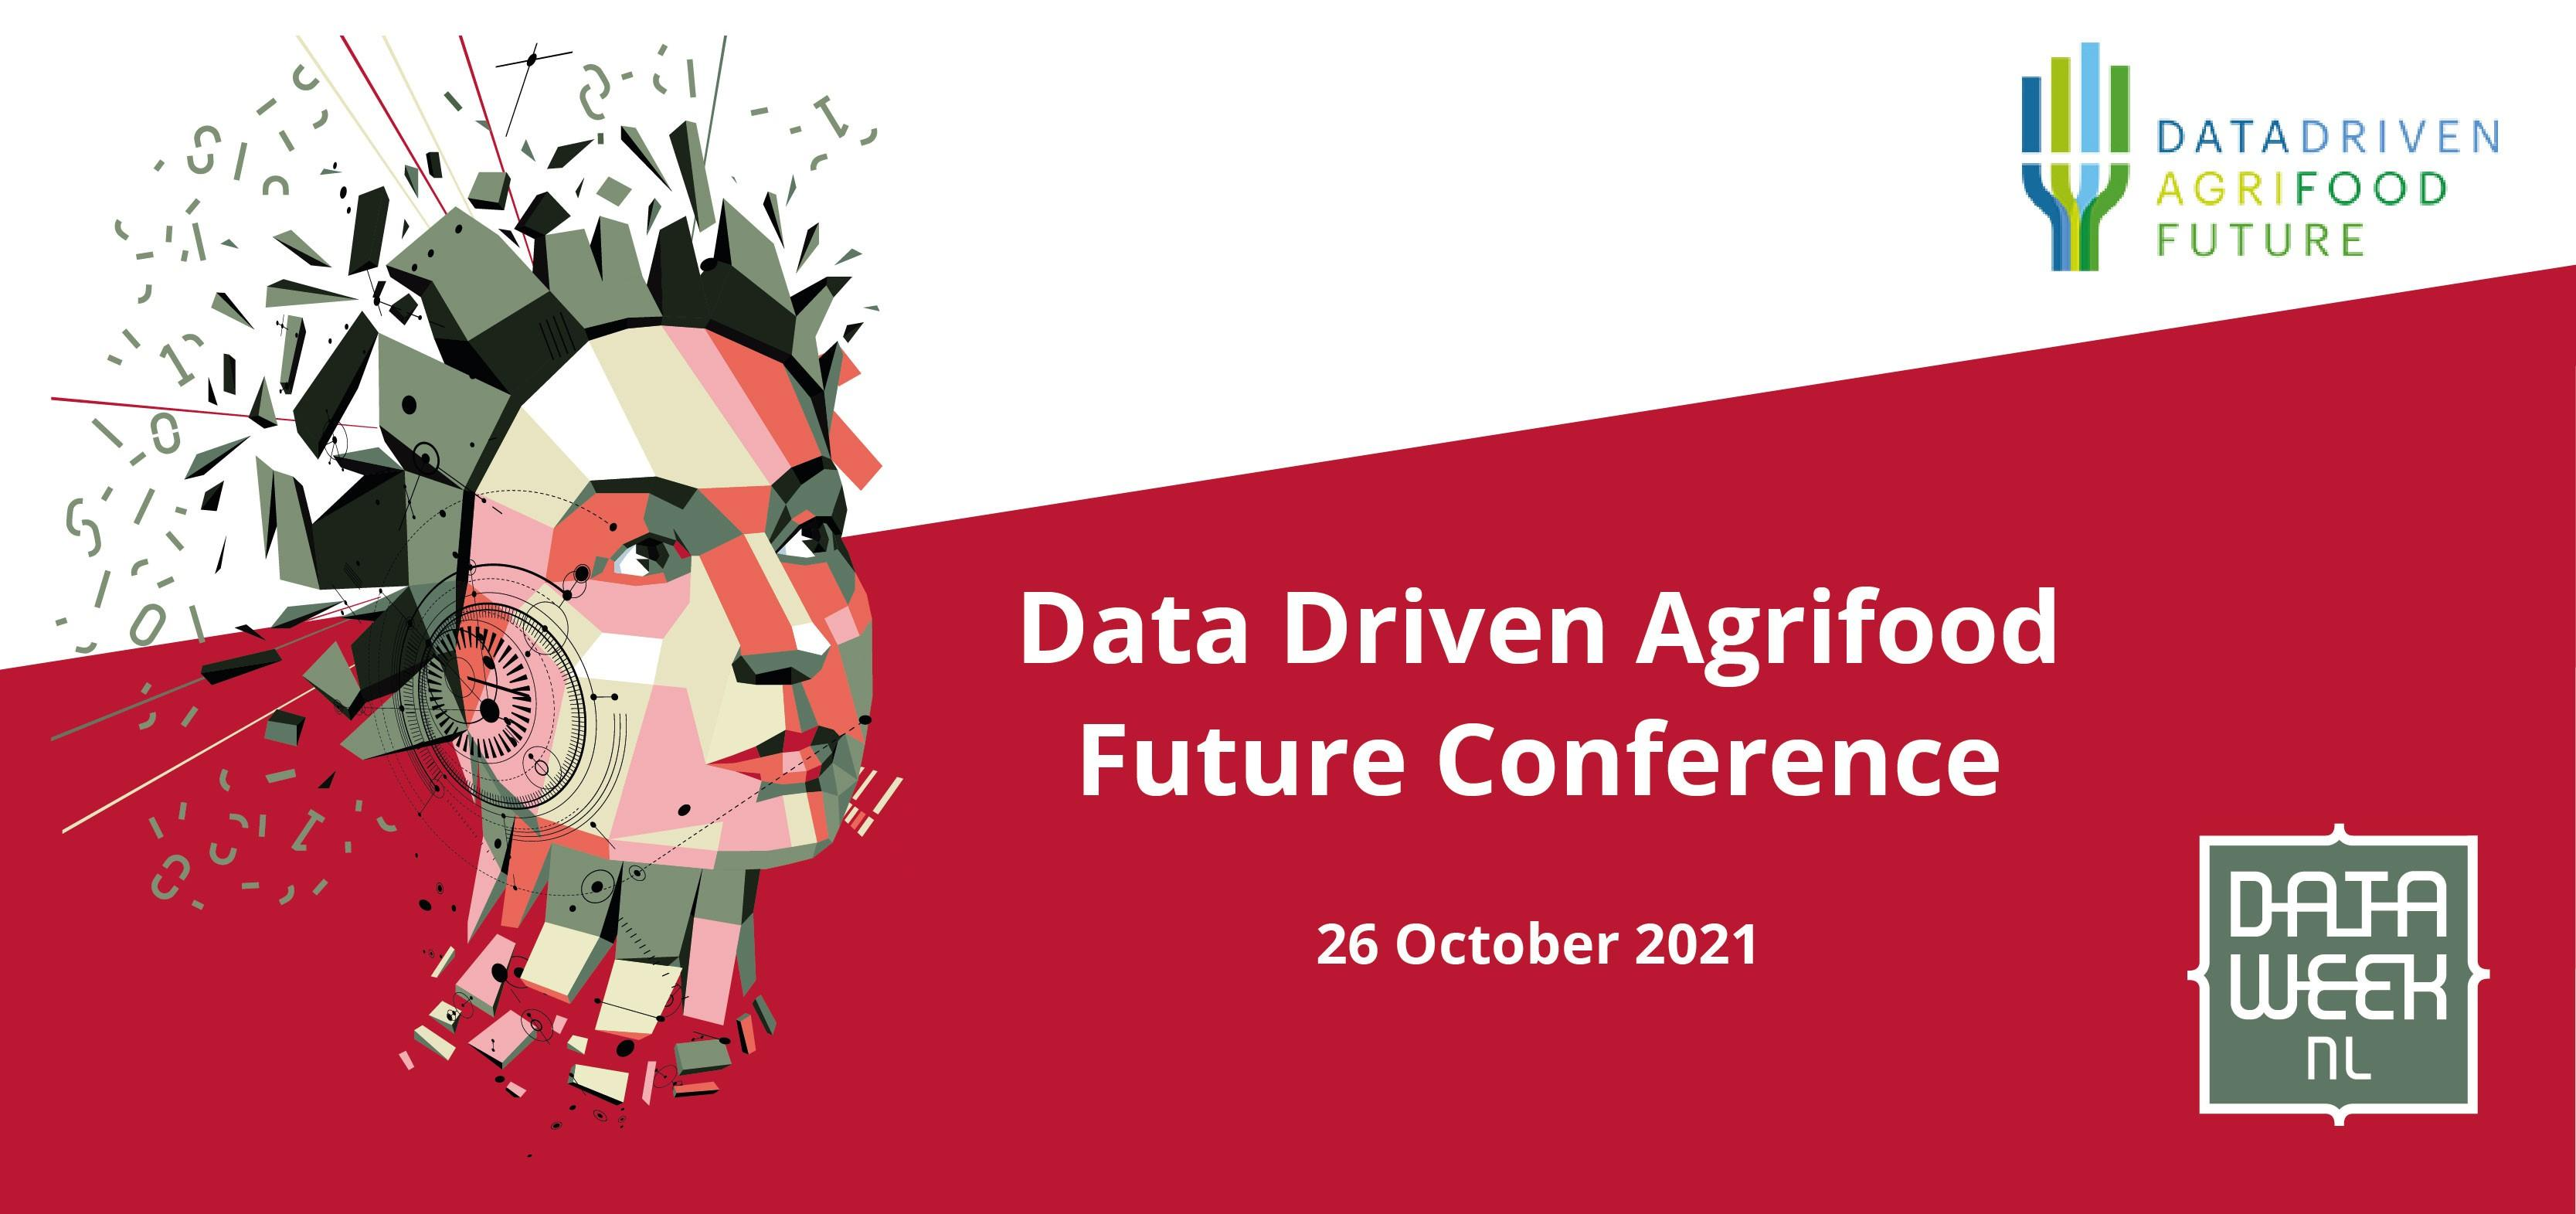 Data driven agrifood future conference